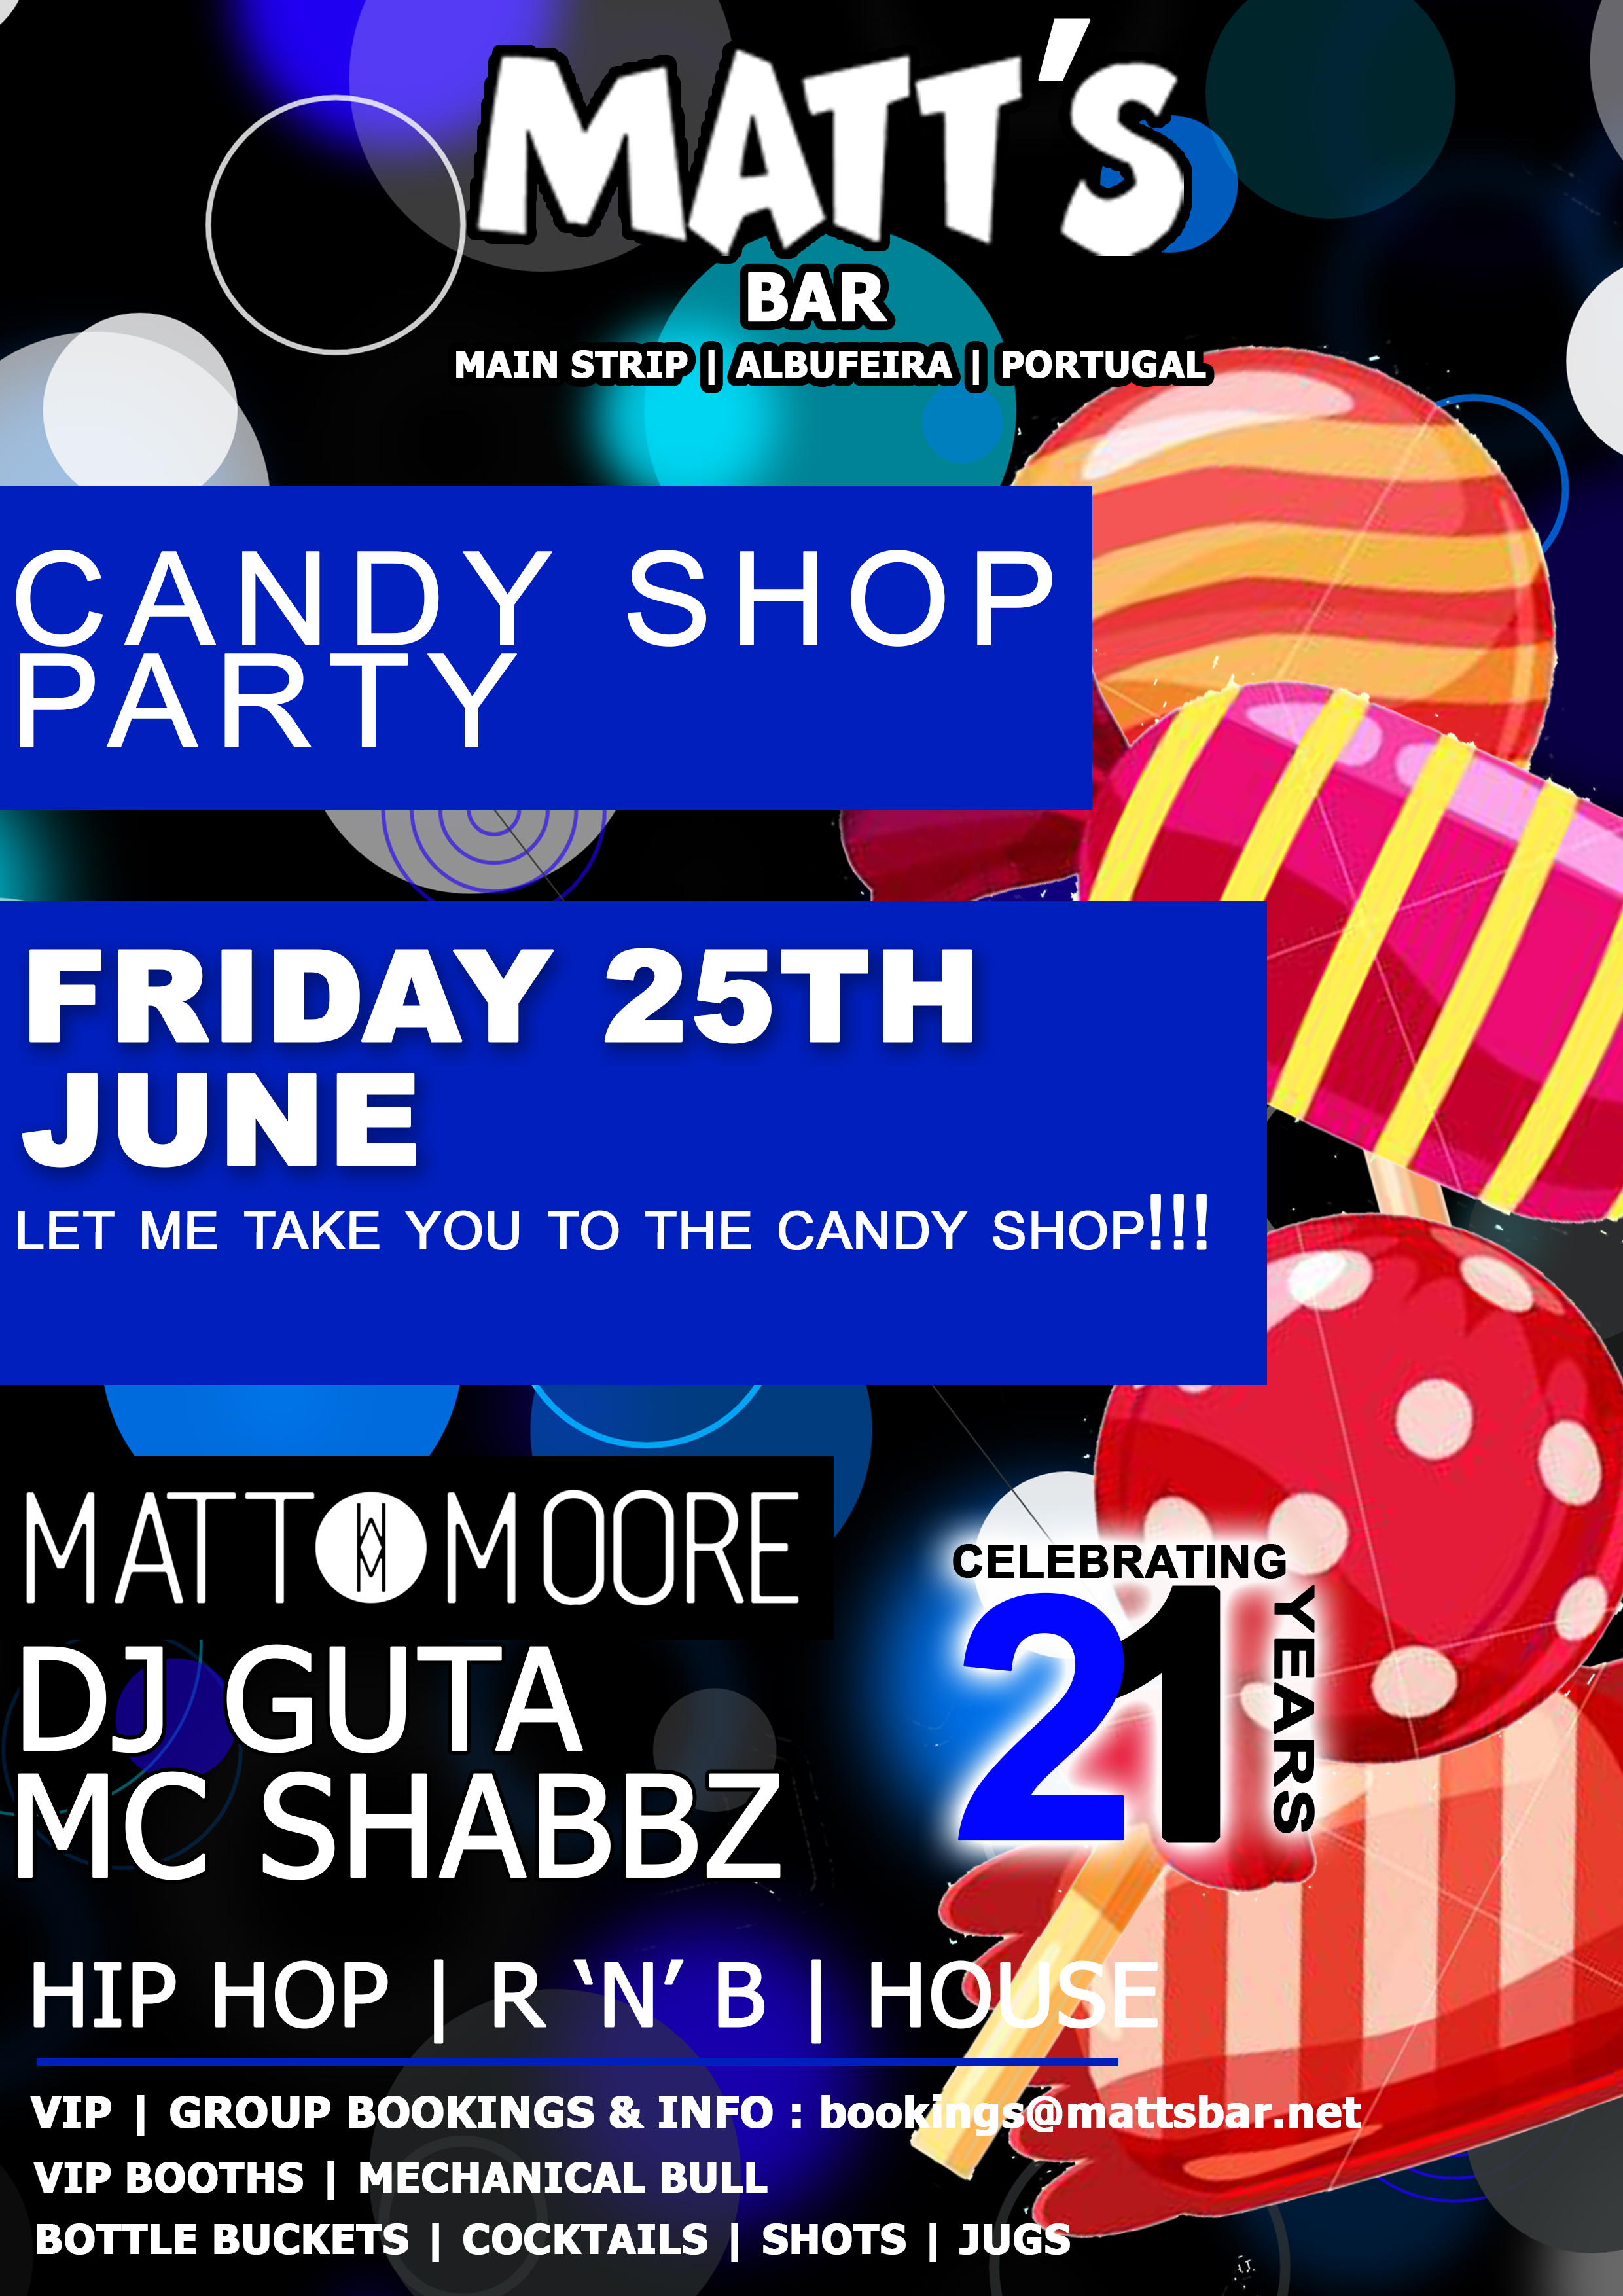 THE CANDY SHOP PARTY